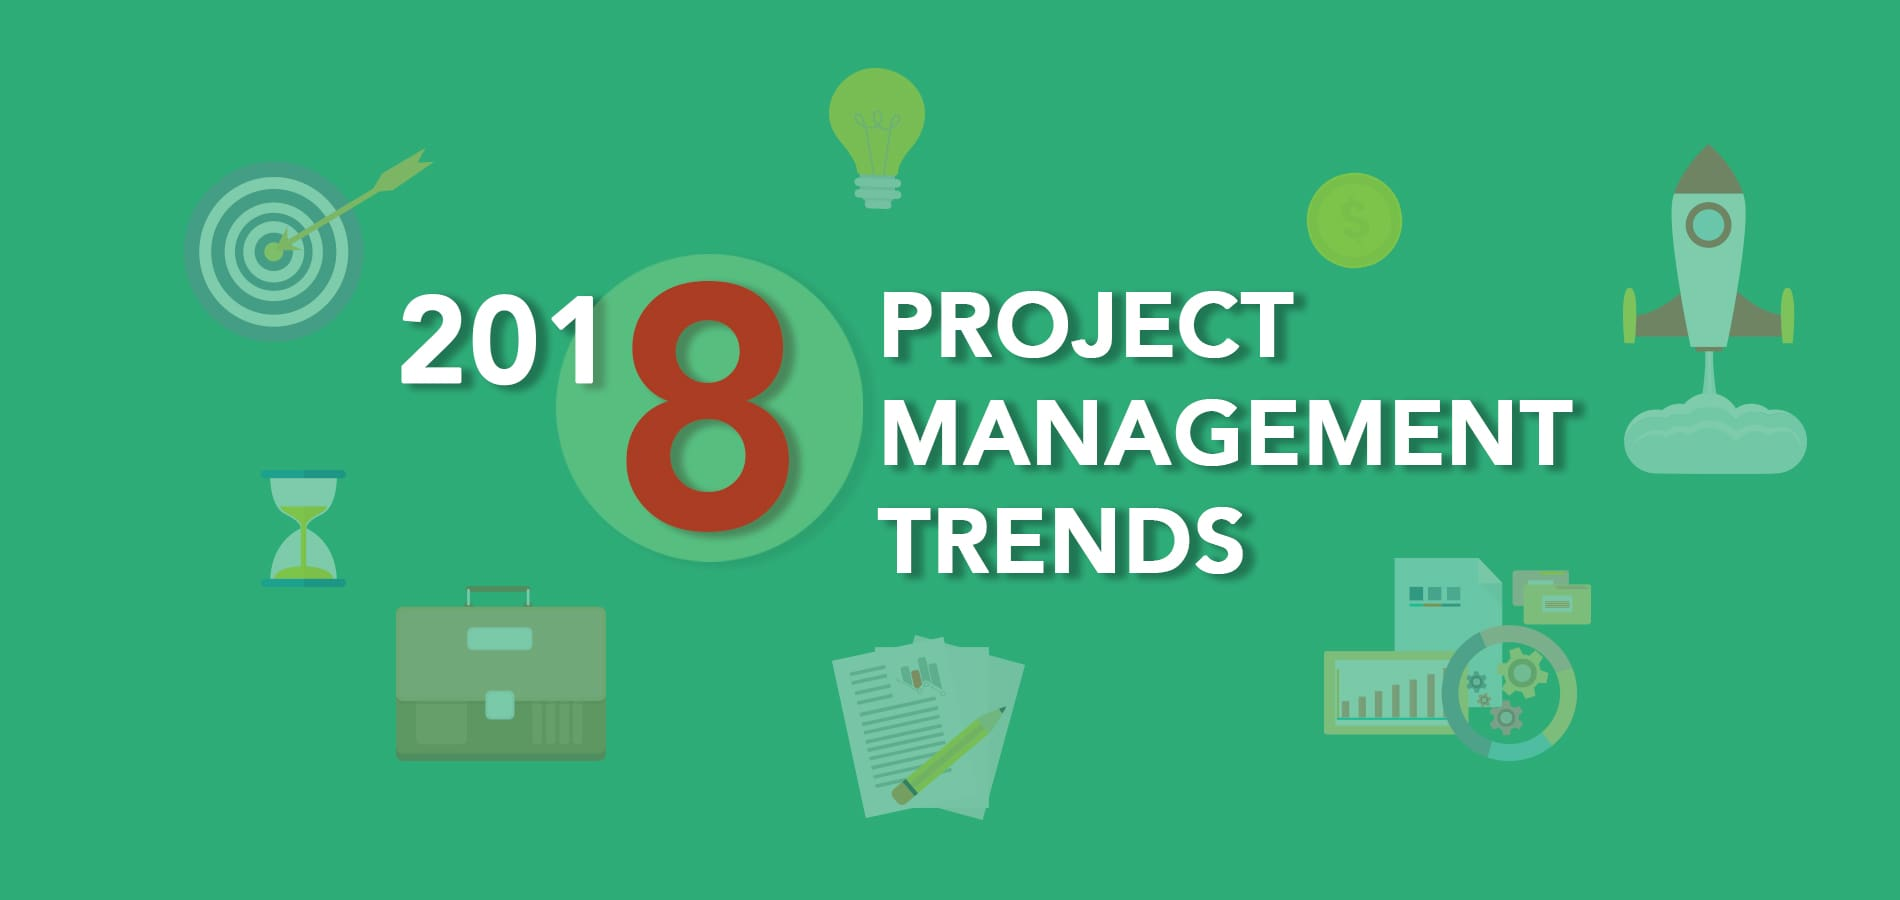 8 project management trends of 2018